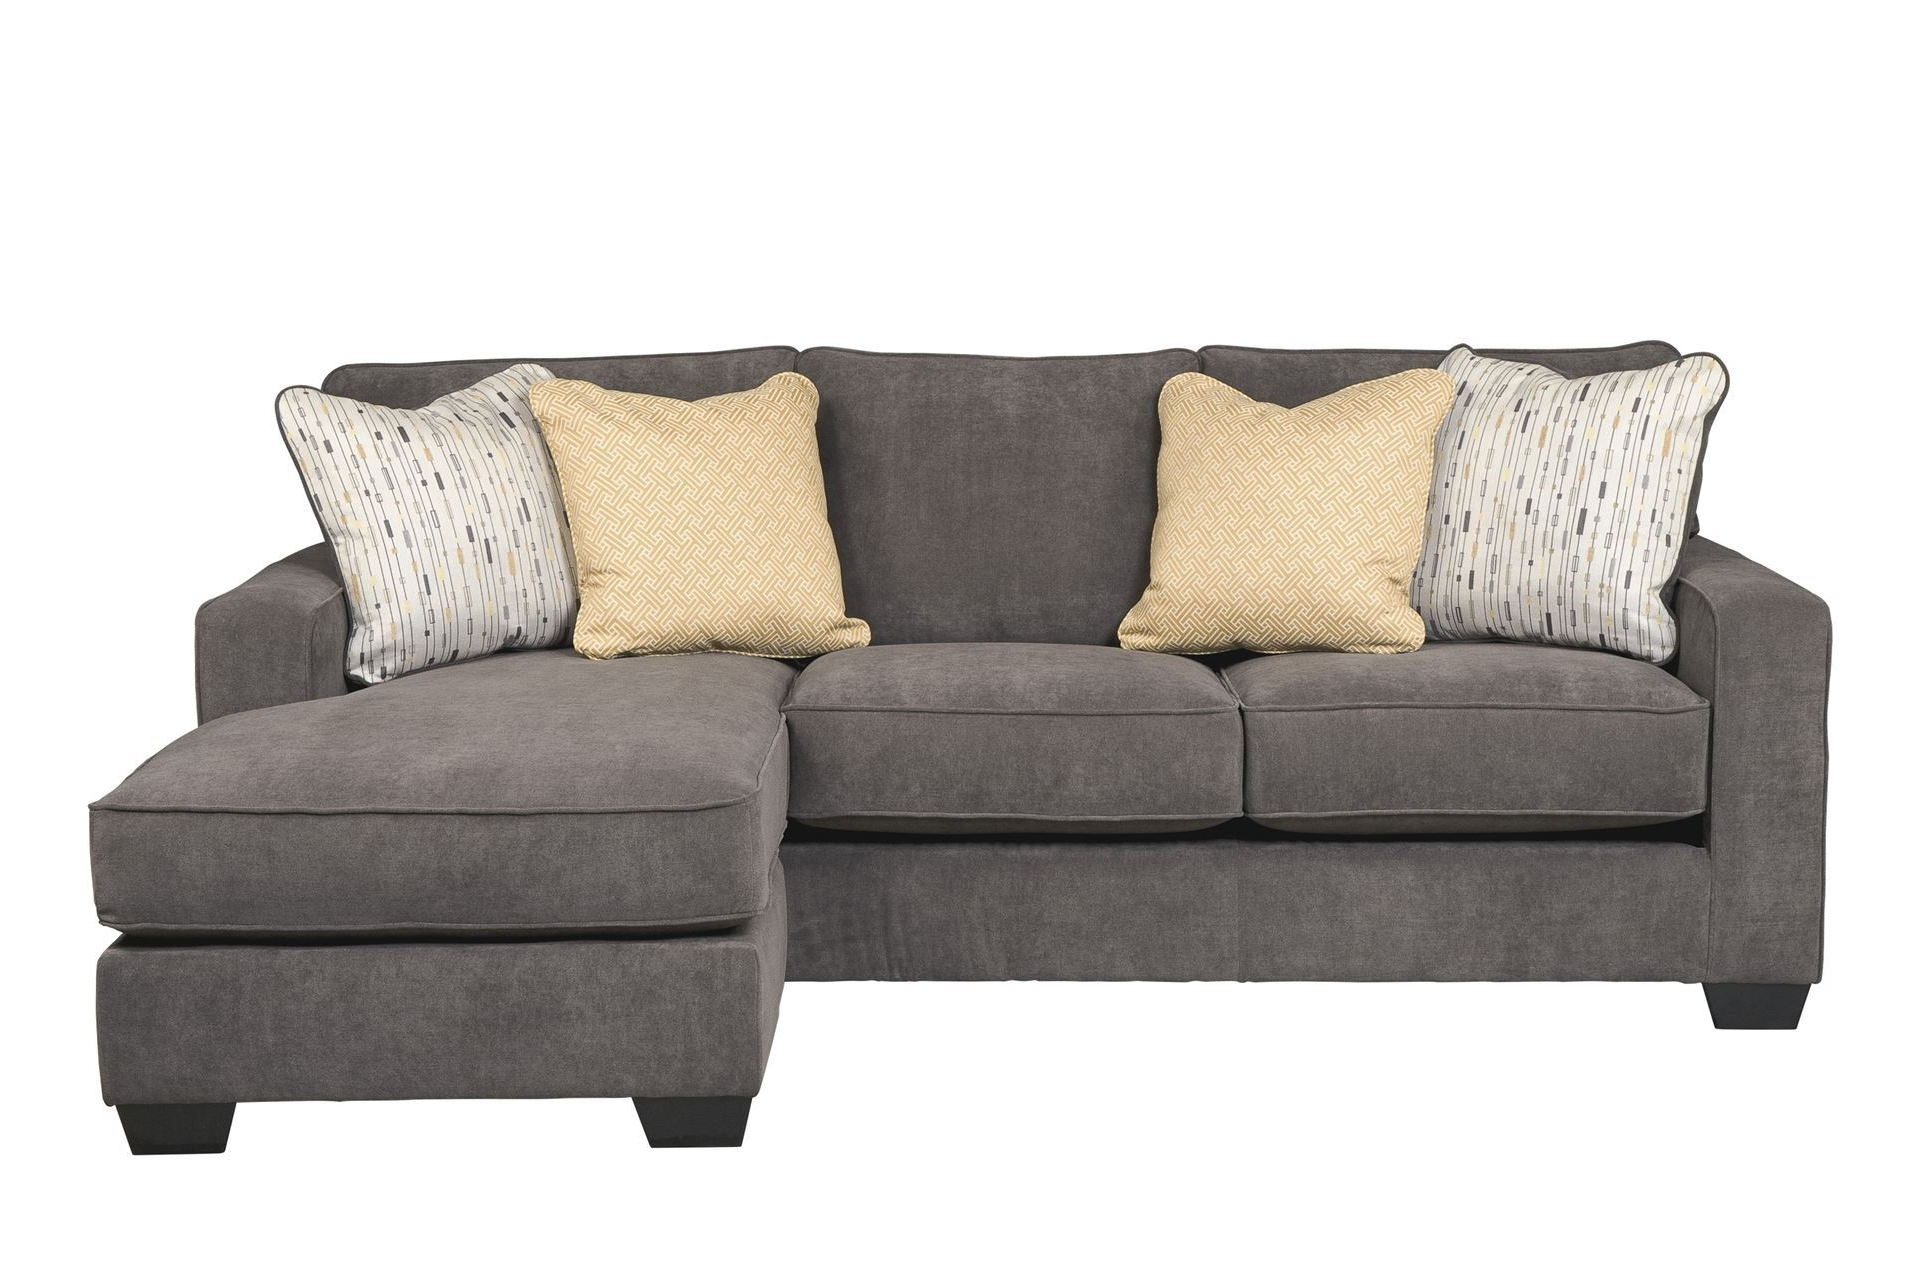 Small Chaise Lounges Regarding Well Liked Small Chaise Lounge Sofa Photos (View 12 of 15)